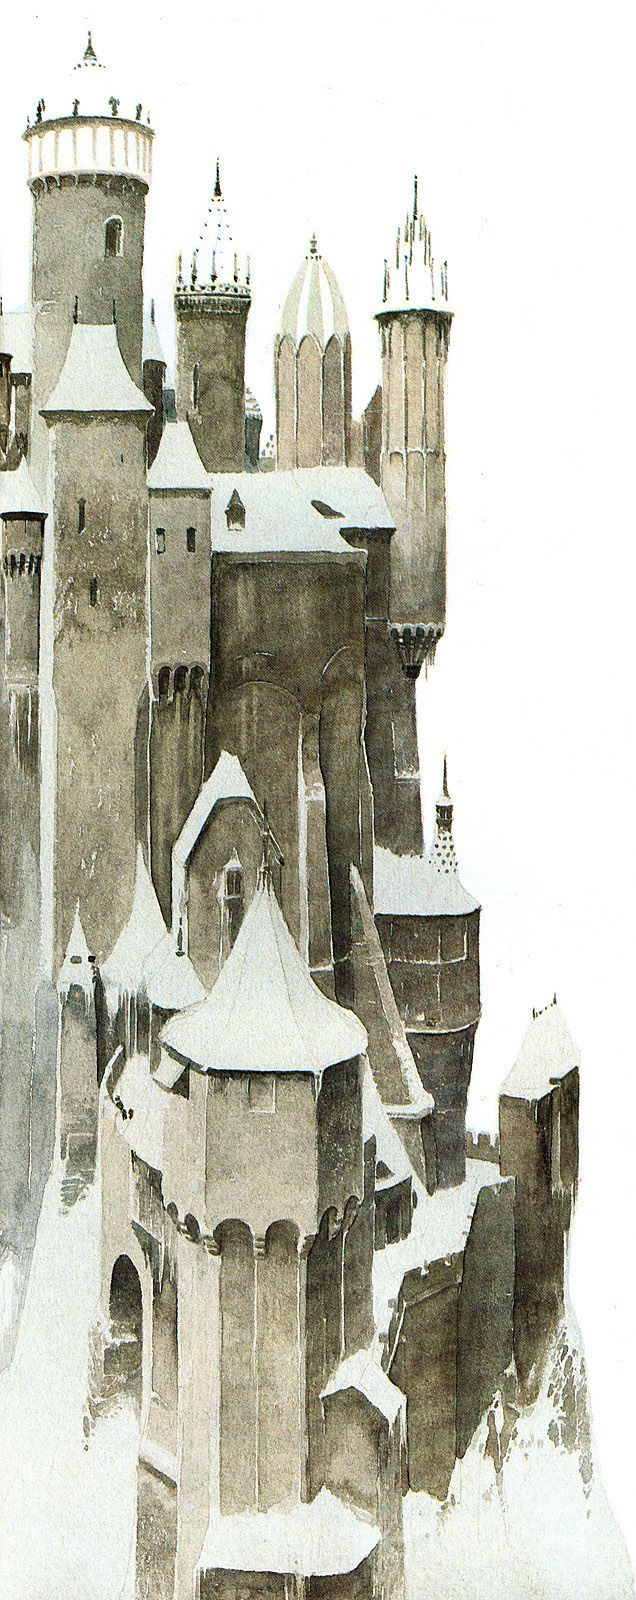 alan_lee_castles_dietrich and the castle of the ice queen2.jpg (636×1600)